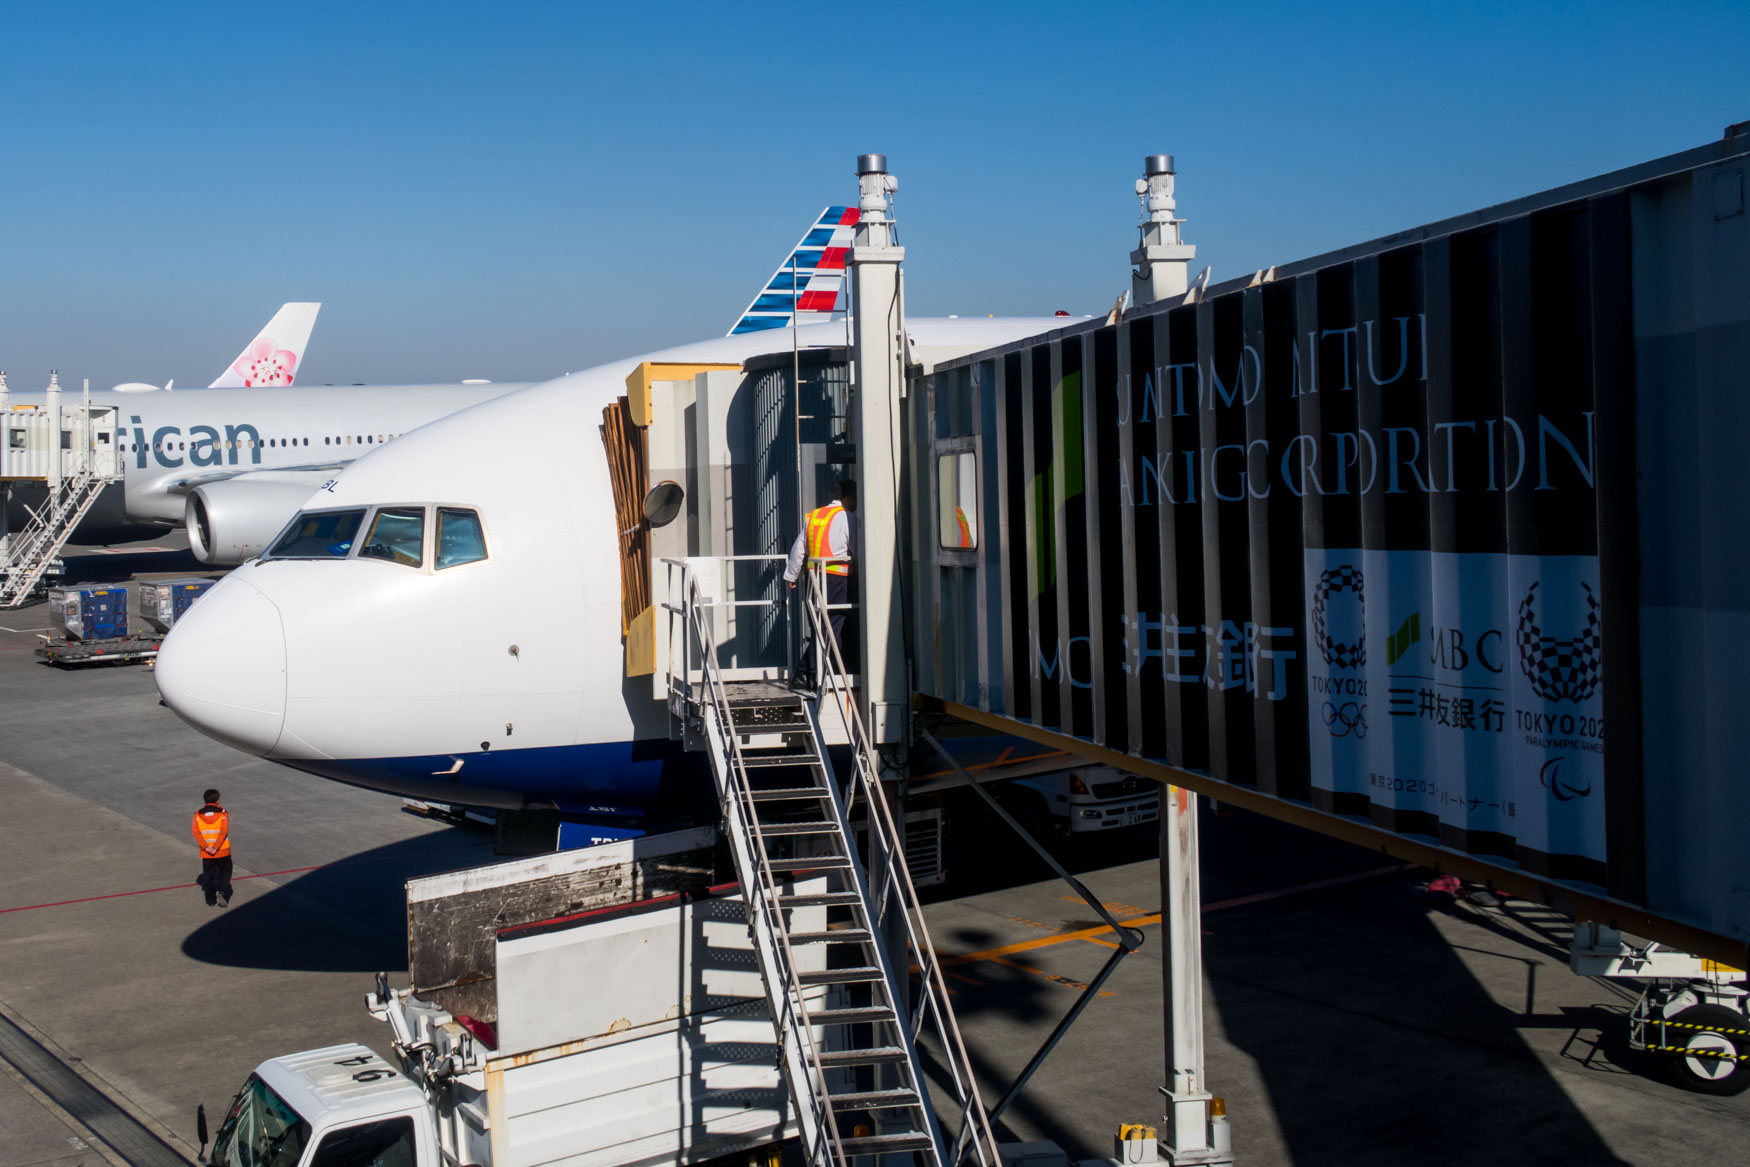 Review: British Airways 777-300ER Economy Class from London